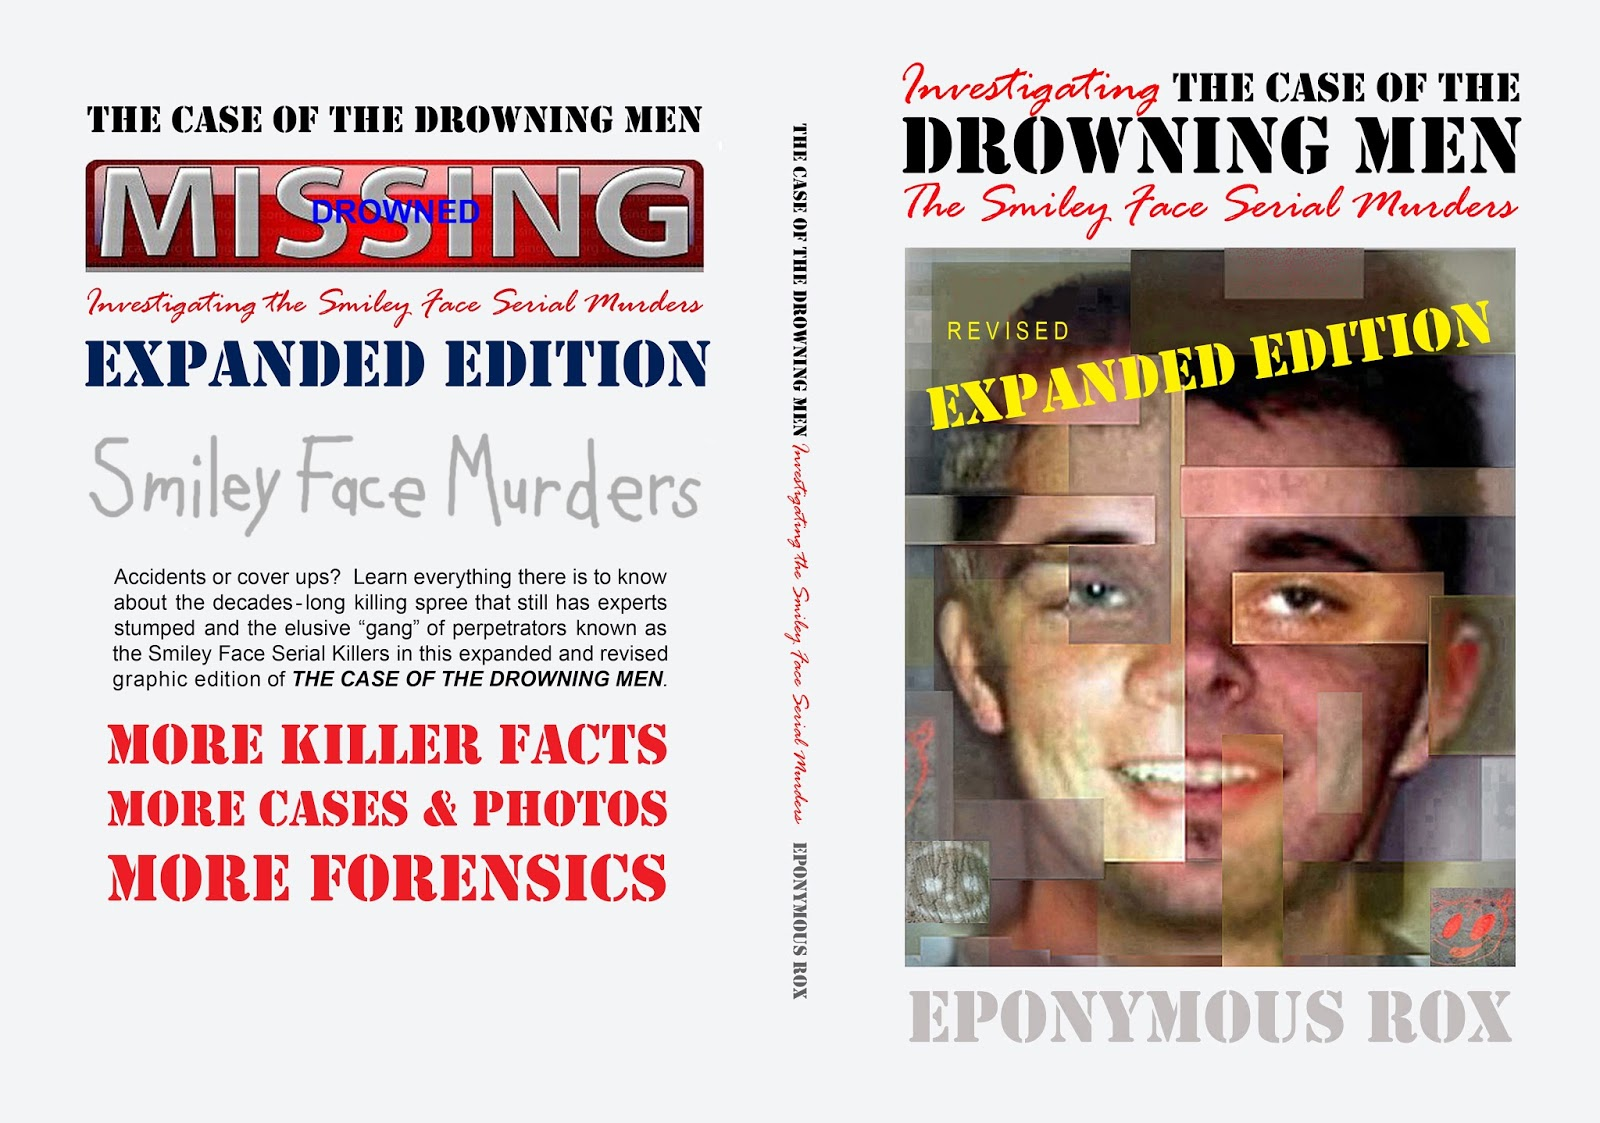 NEW: The Case of the Drowning Men (expanded and revised graphic edition)